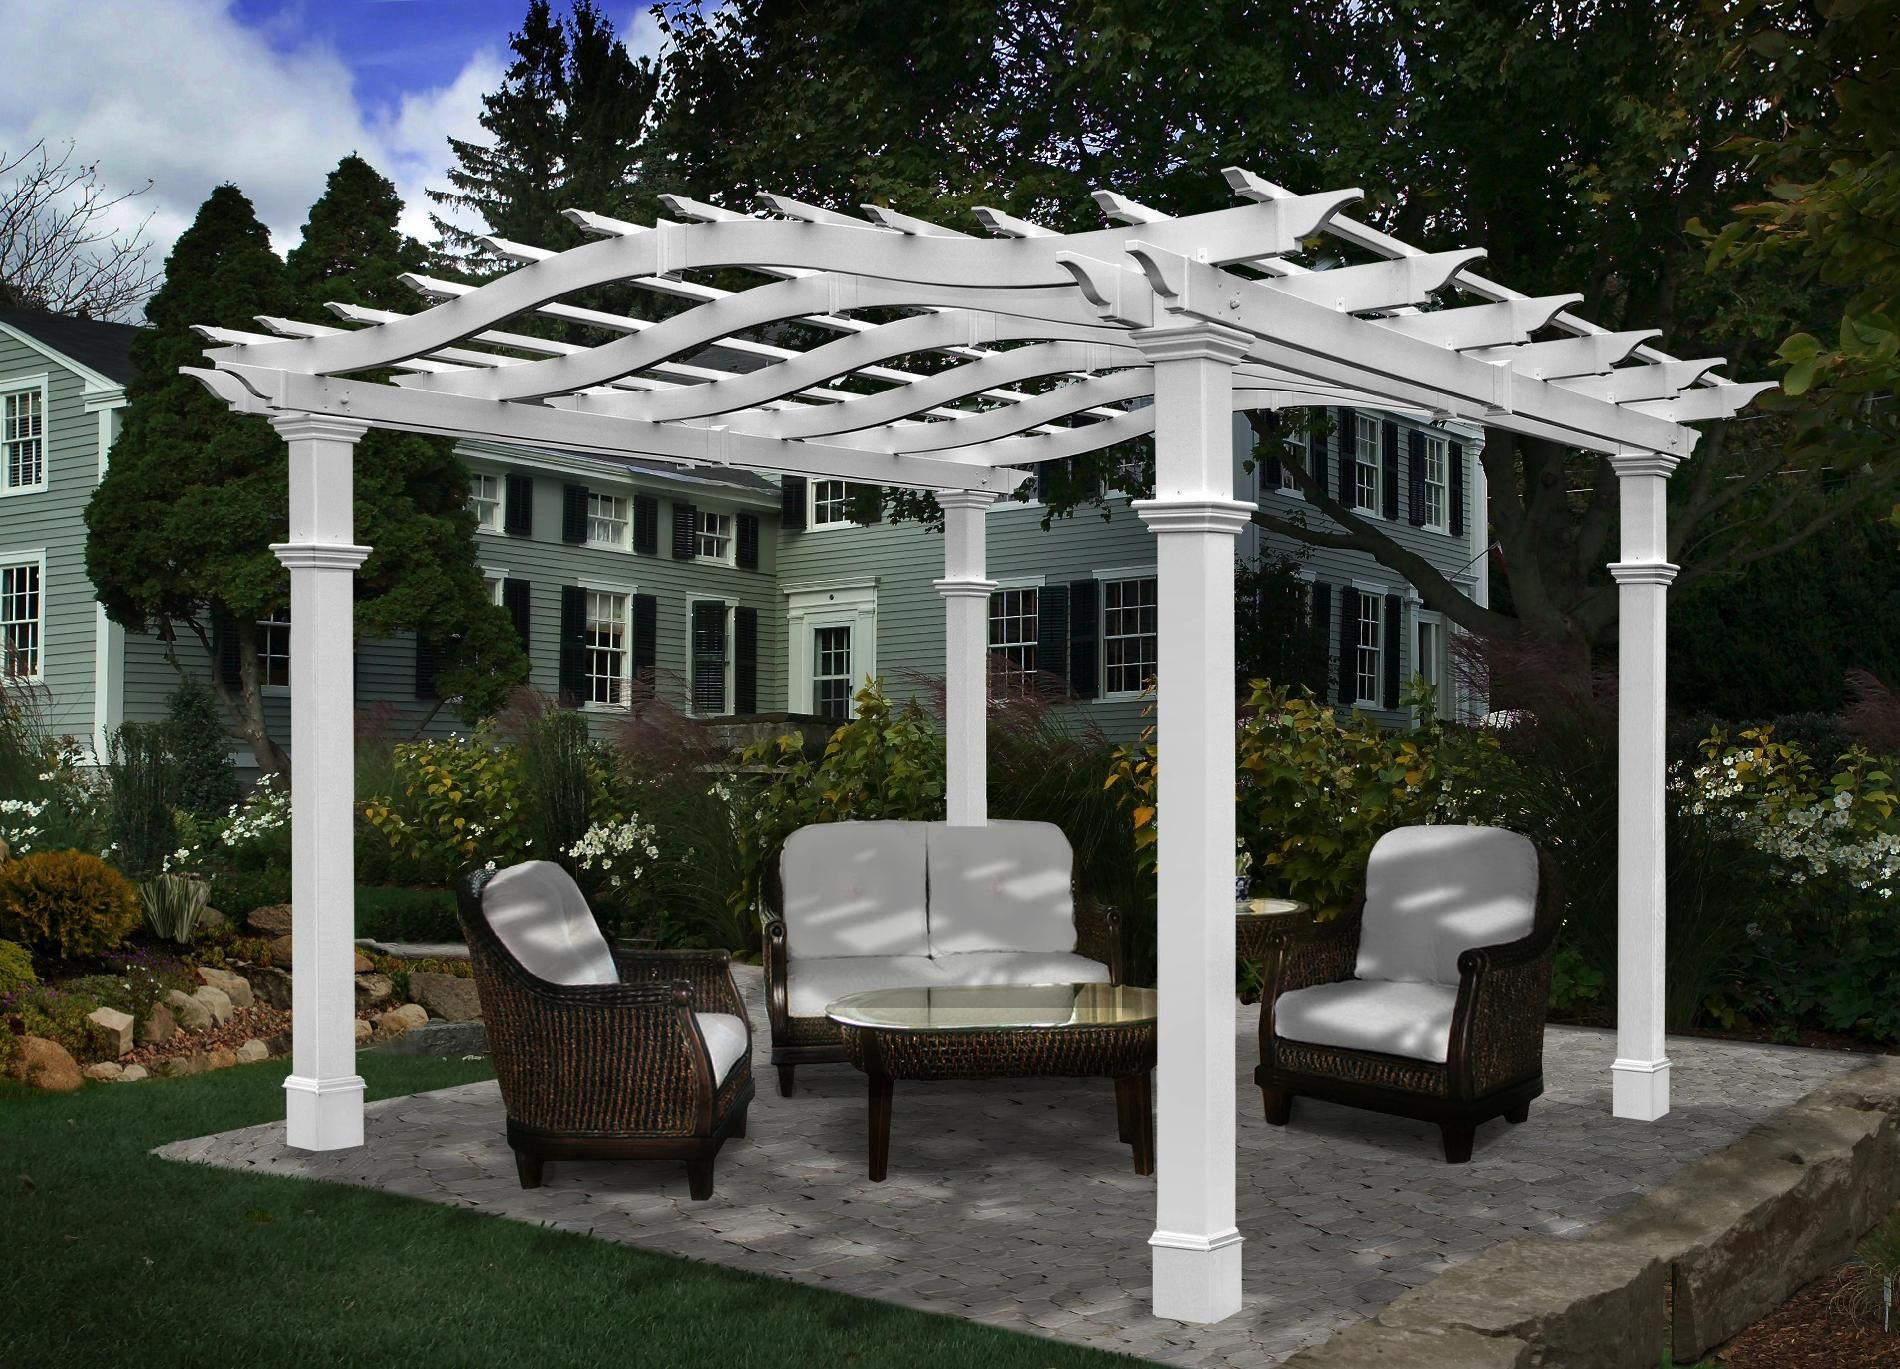 New England Arbors Rio 10 X 10 Arch Top Pergola With Short Base Moldings Outdoor Living Gazebos Canopies Outdoor Pergola Pergola Designs Vinyl Pergola